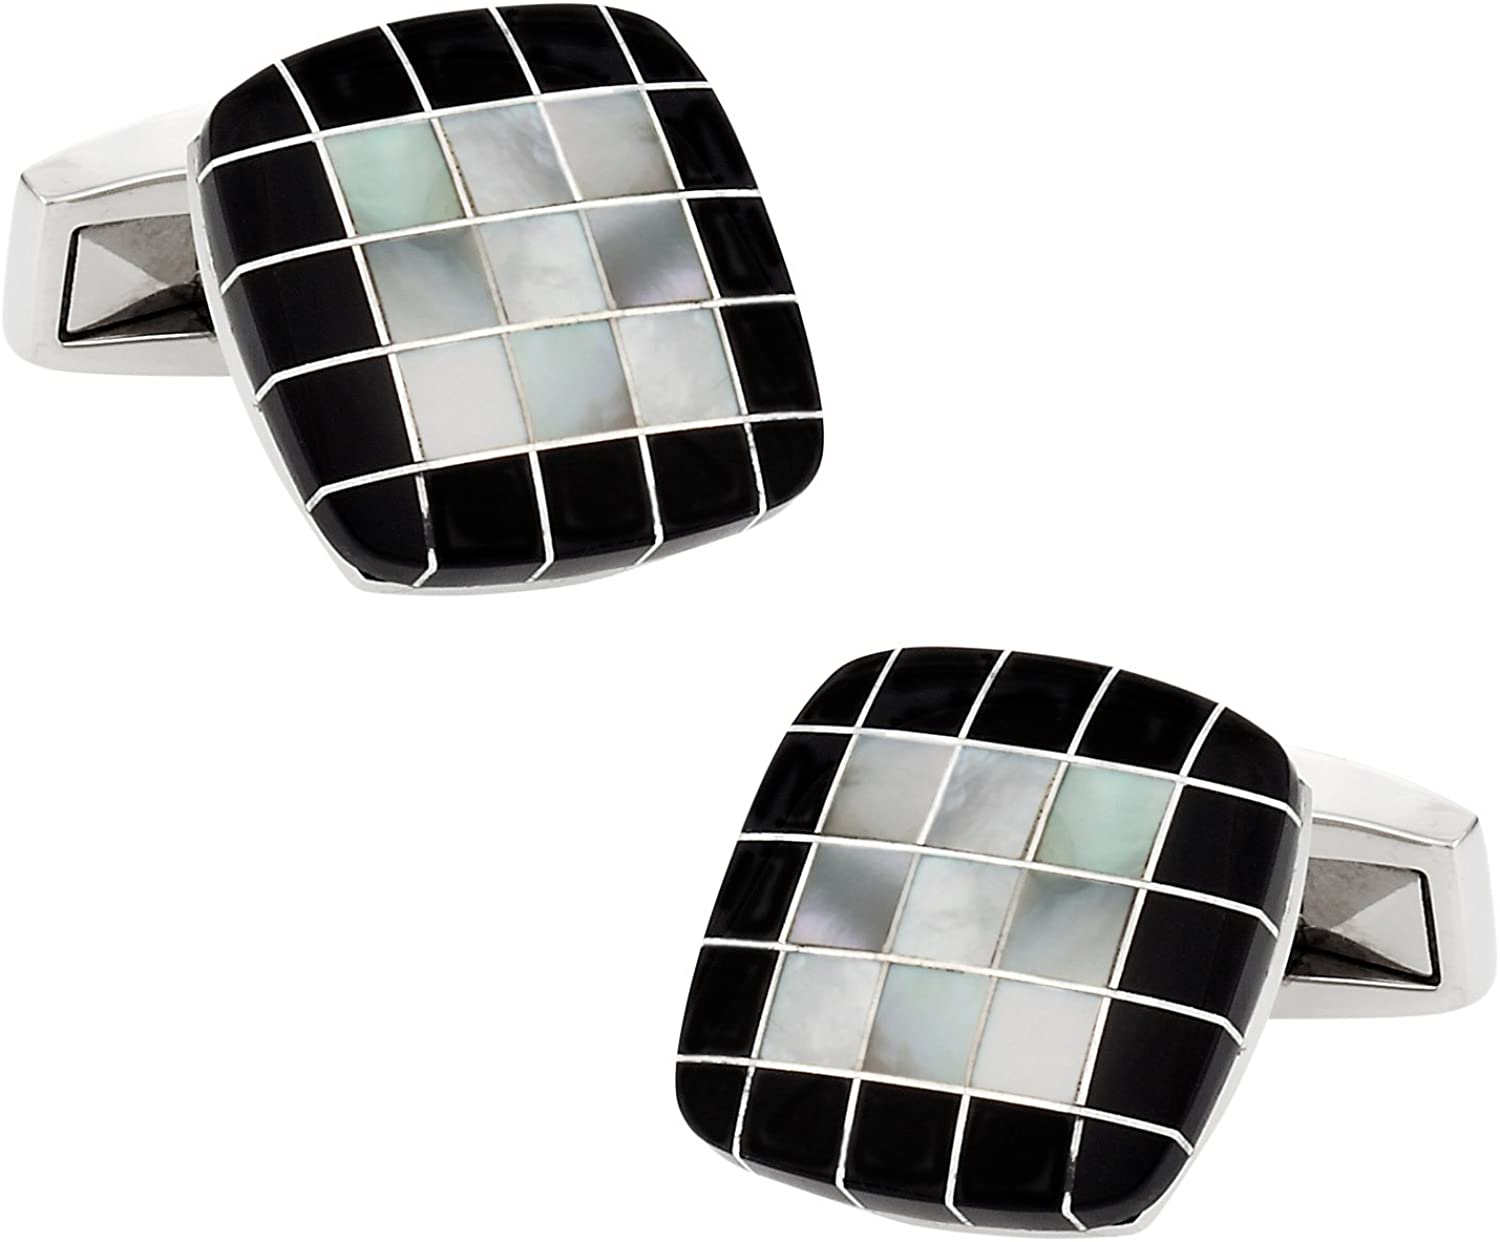 Black Onyx Mother of Pearl Square Cufflinks with Presentation Gift Box